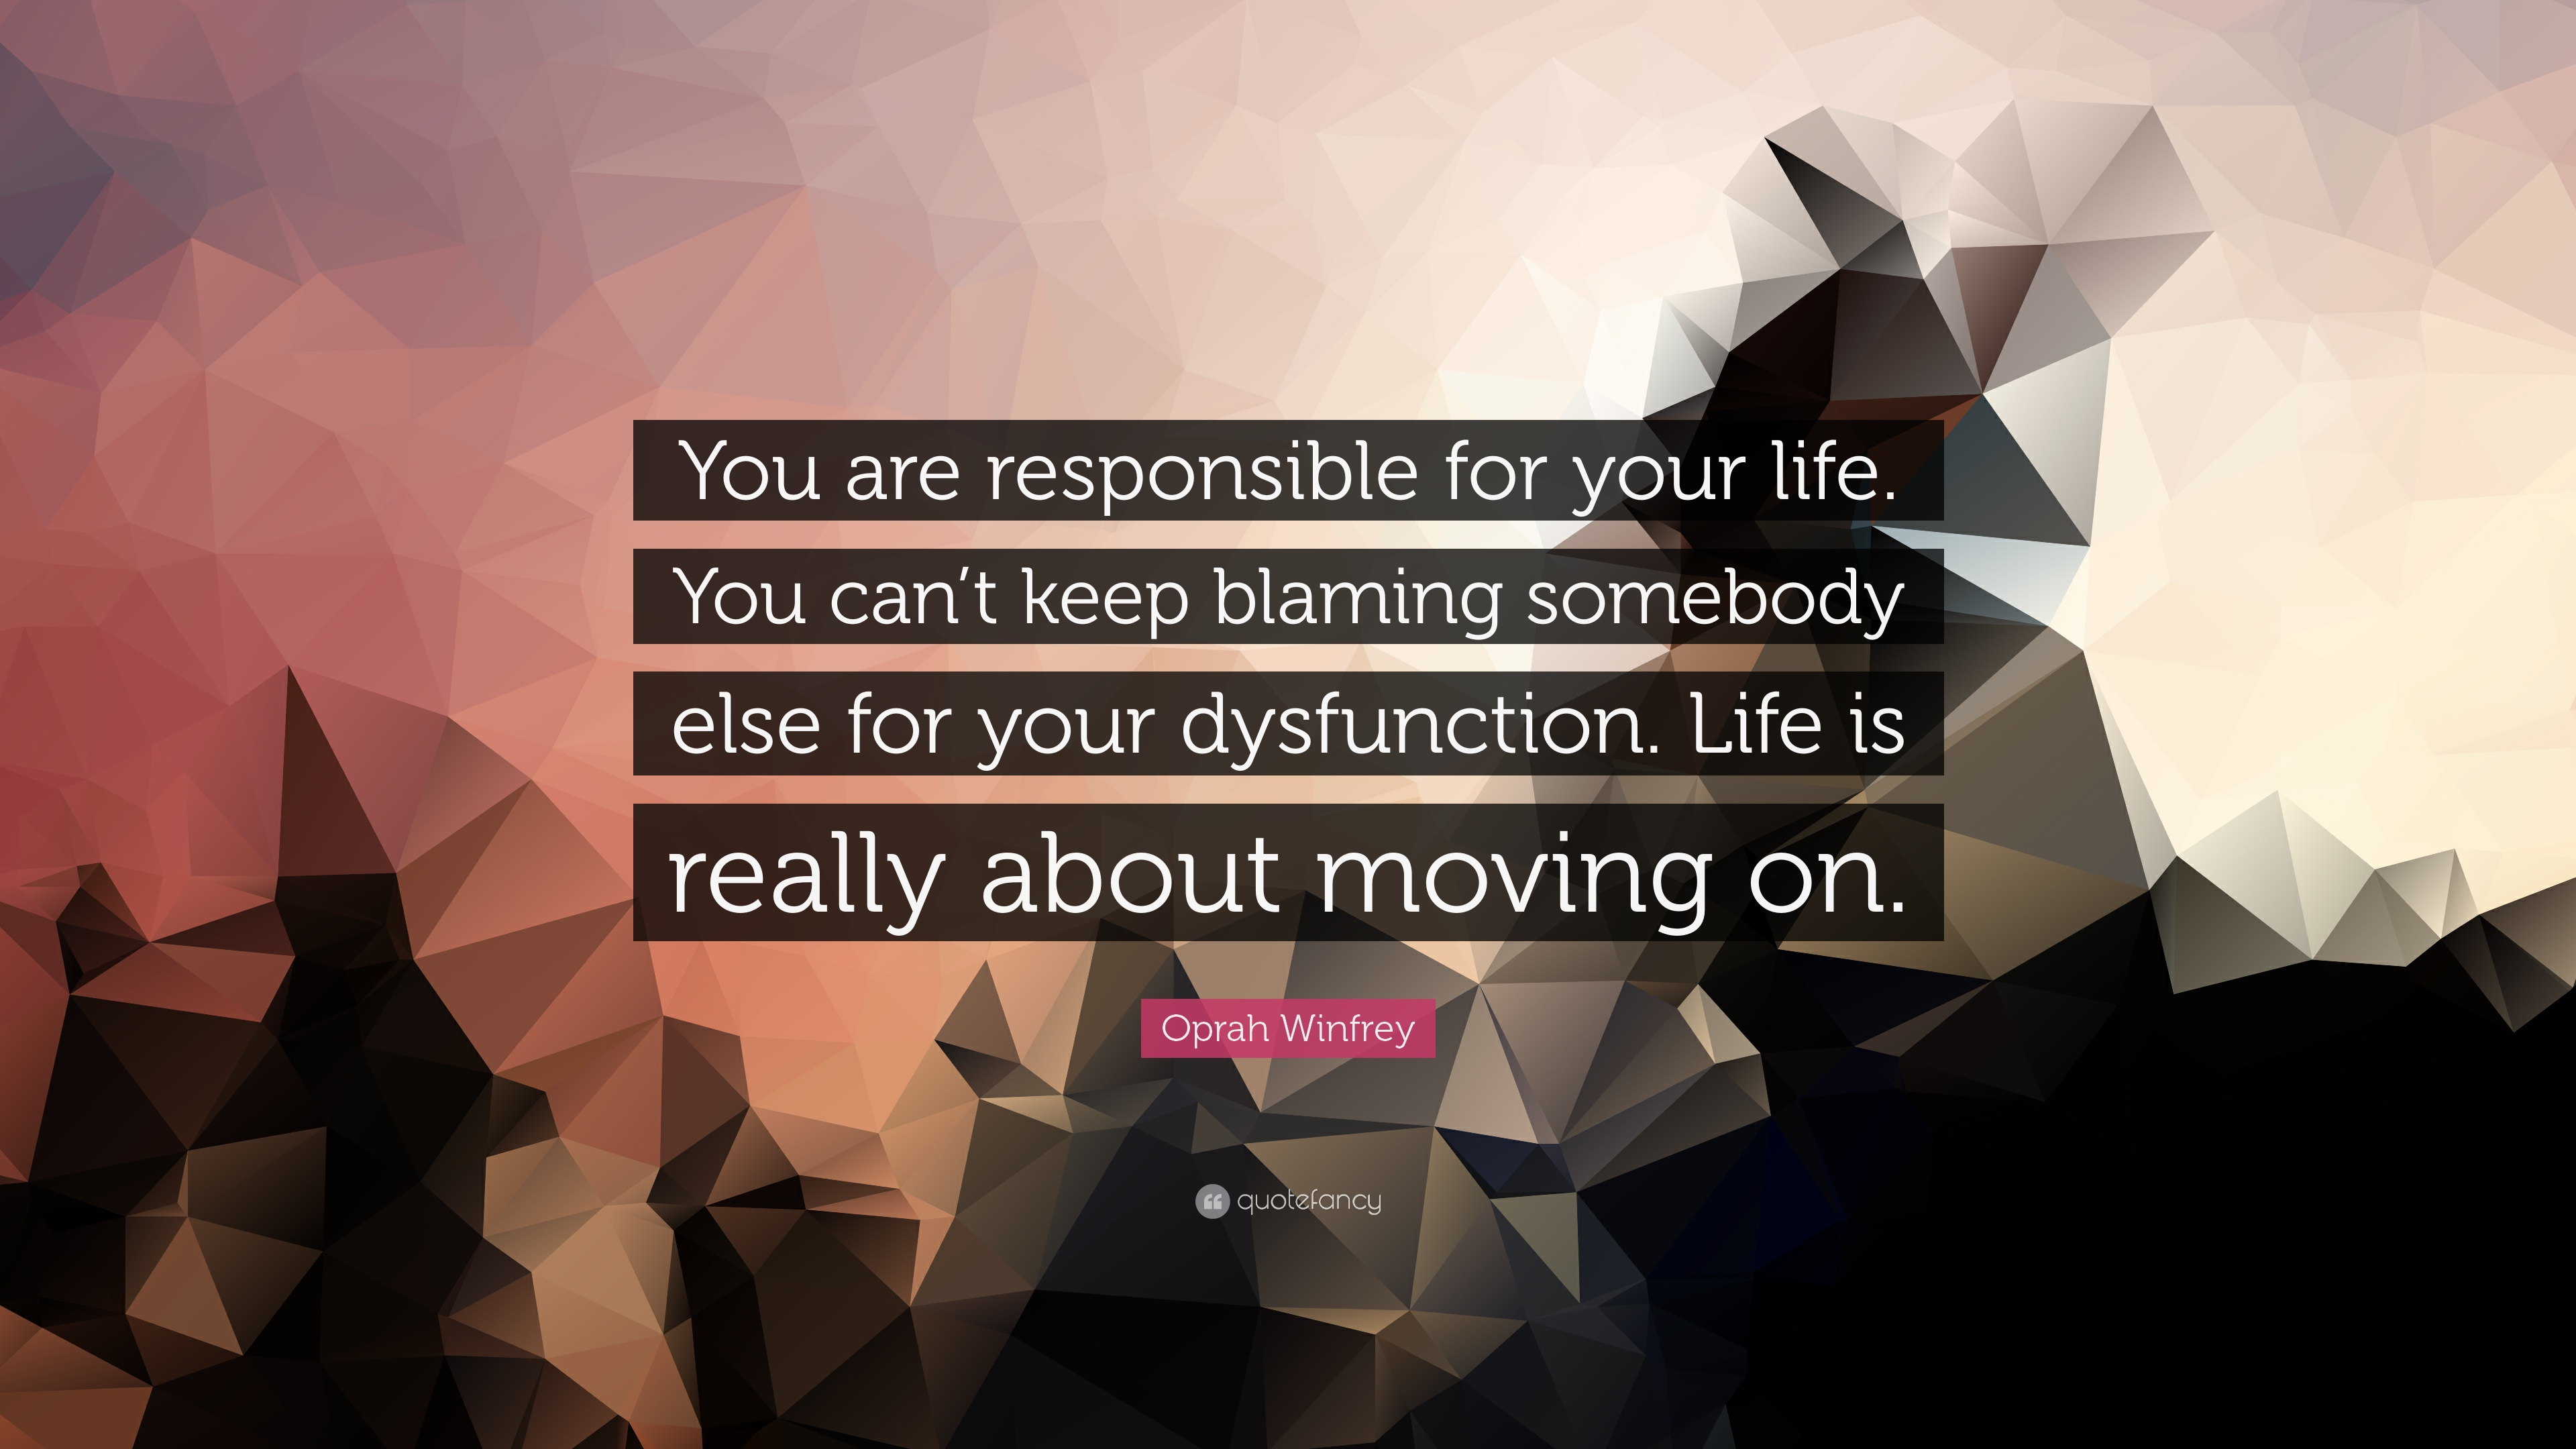 oprah winfrey quote you are responsible for your life you can t oprah winfrey quote you are responsible for your life you can t